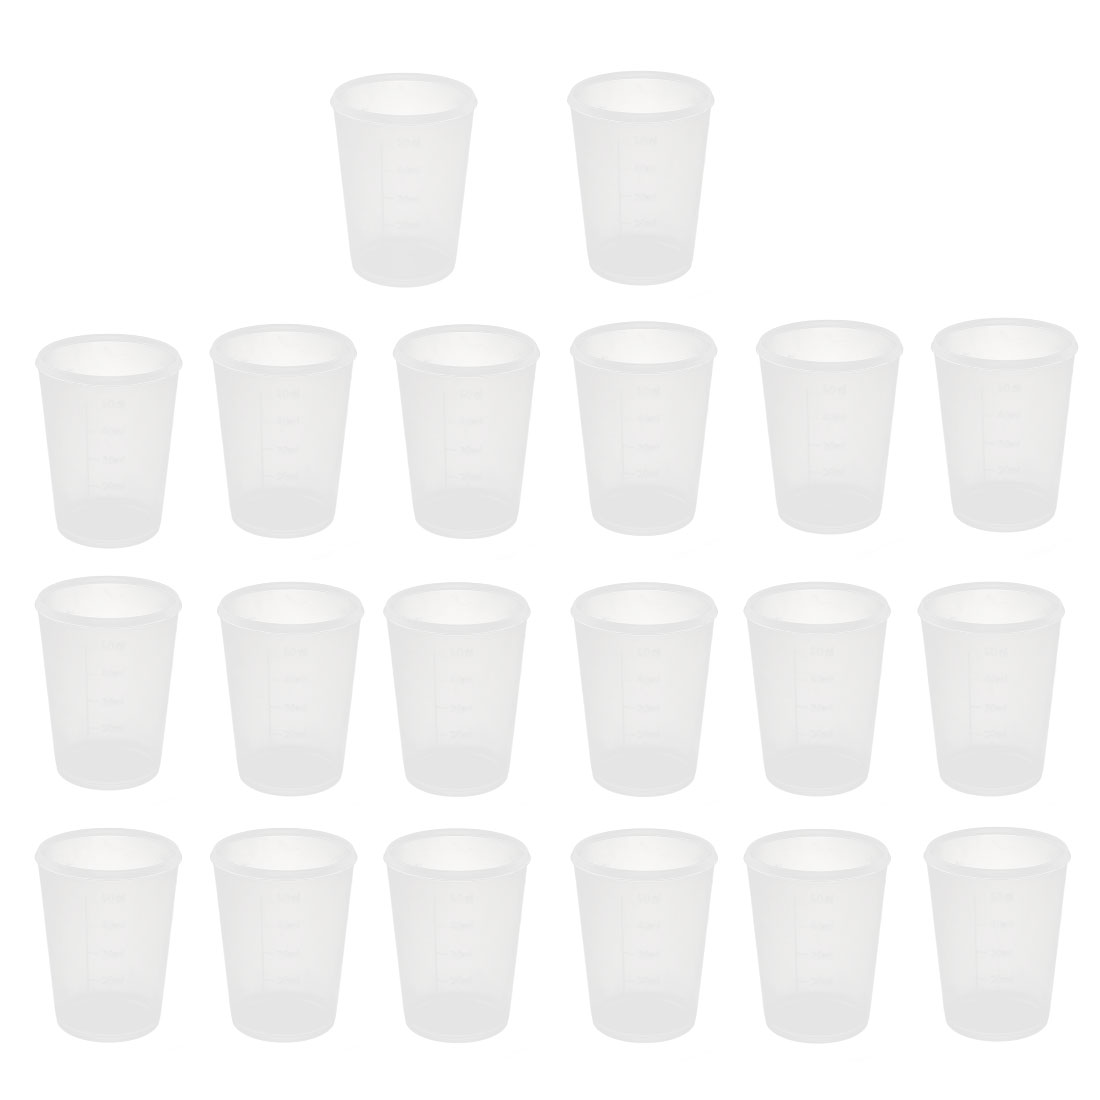 20pcs School Lab Plastic Liquid Container Measuring Testing Beaker 50mL Capacity